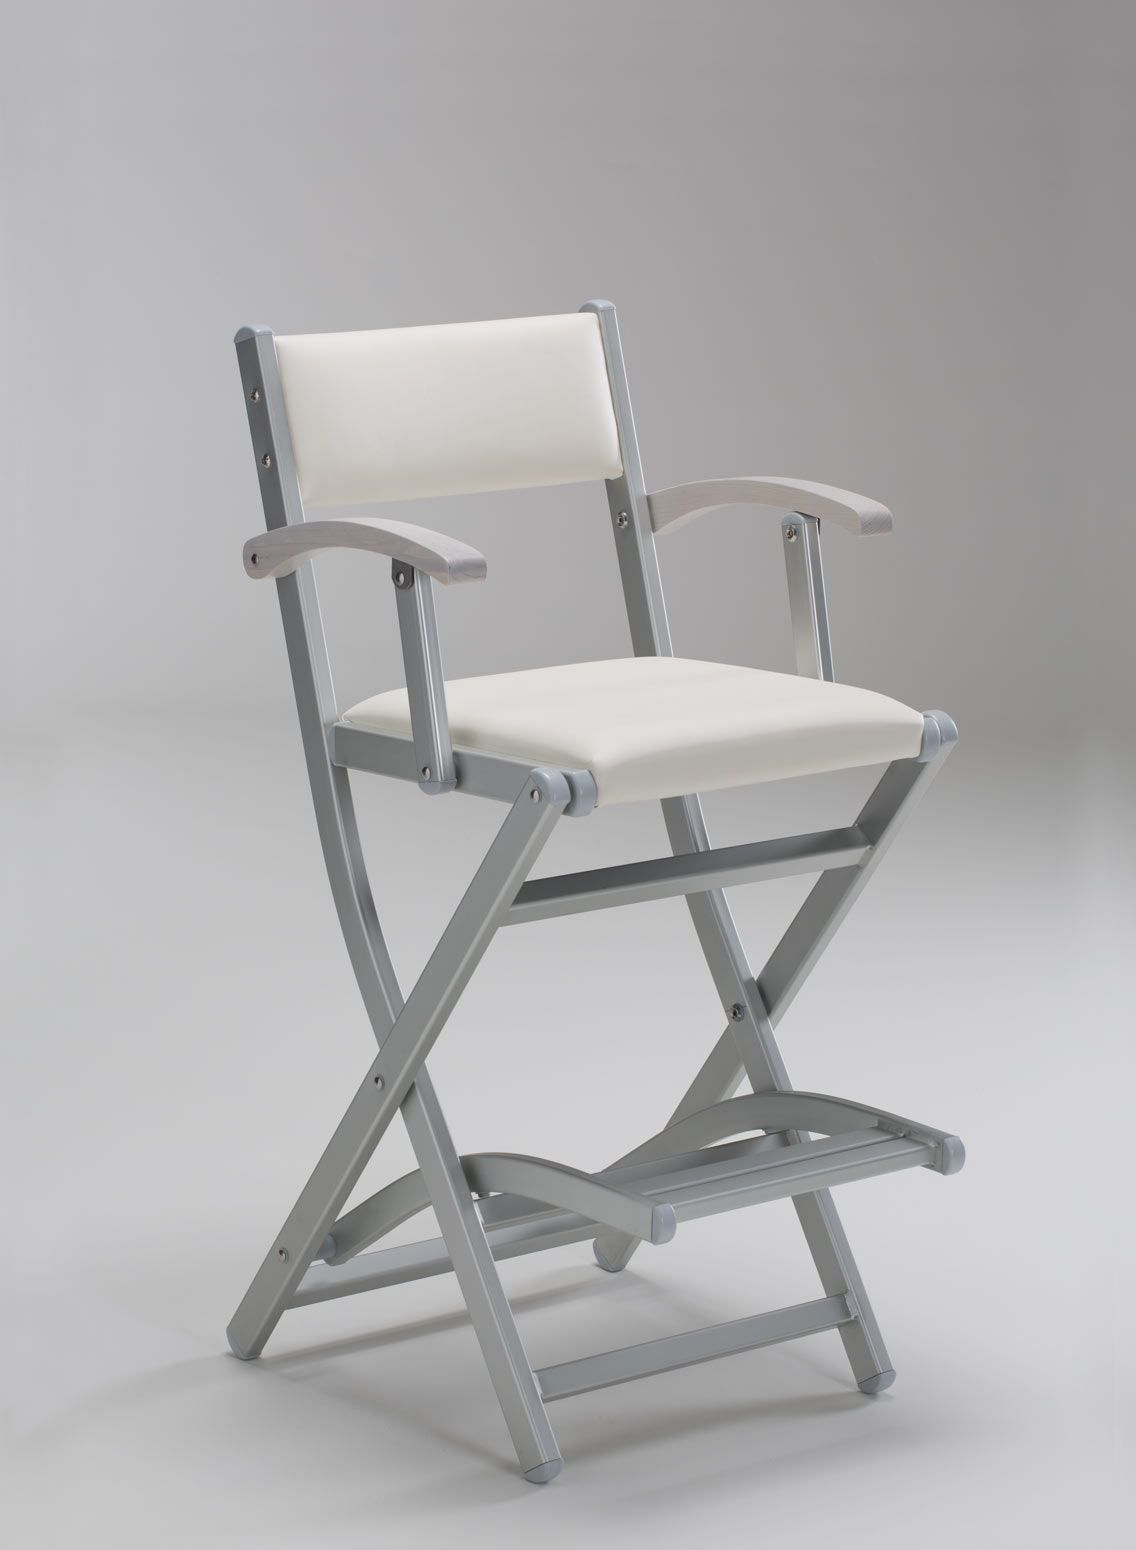 foldable make up chair in leatherette | footrest, armchairs and